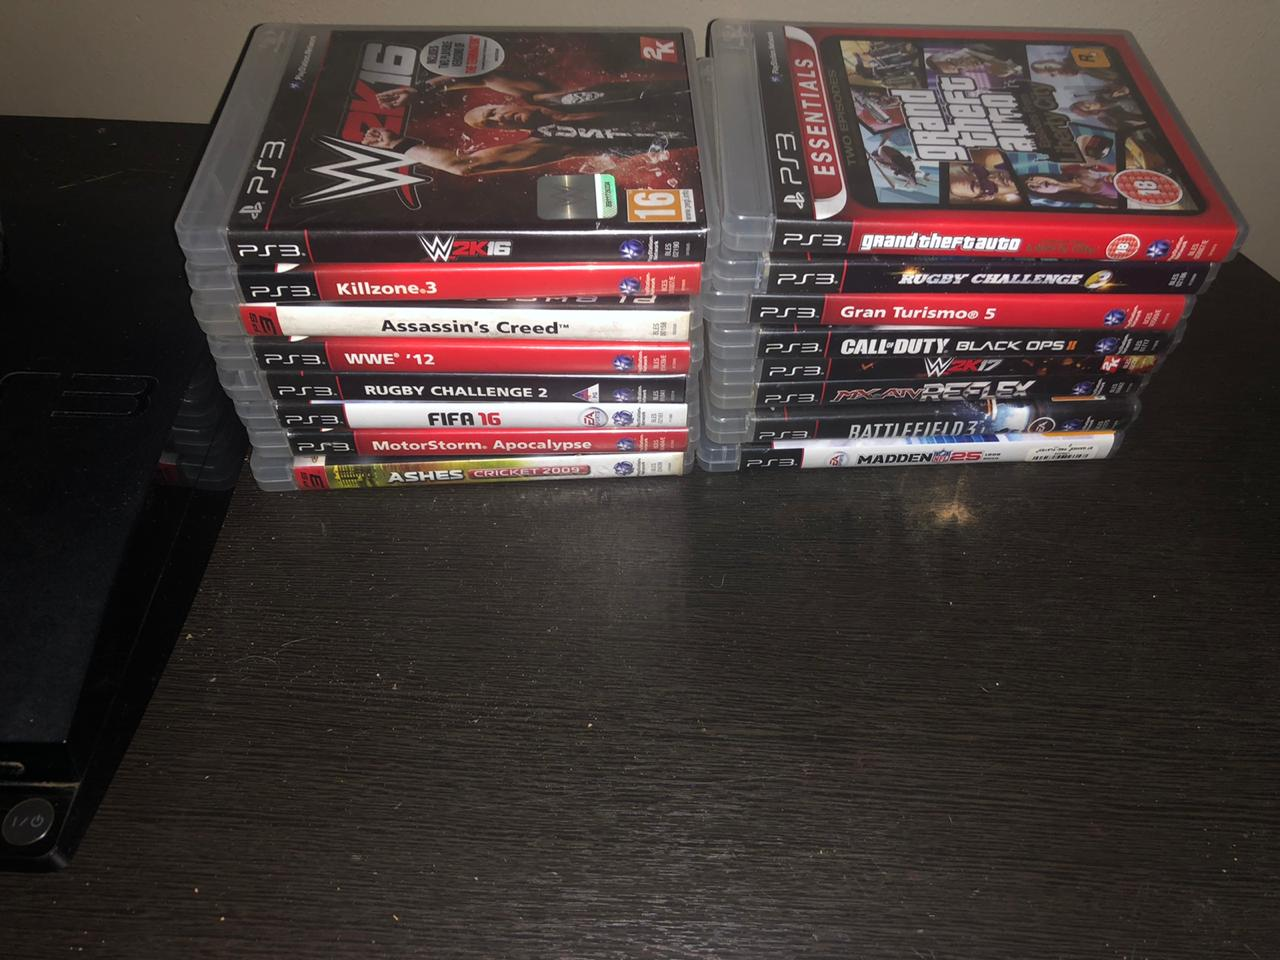 PS3 with all its gamesc+singstar and singstar mics